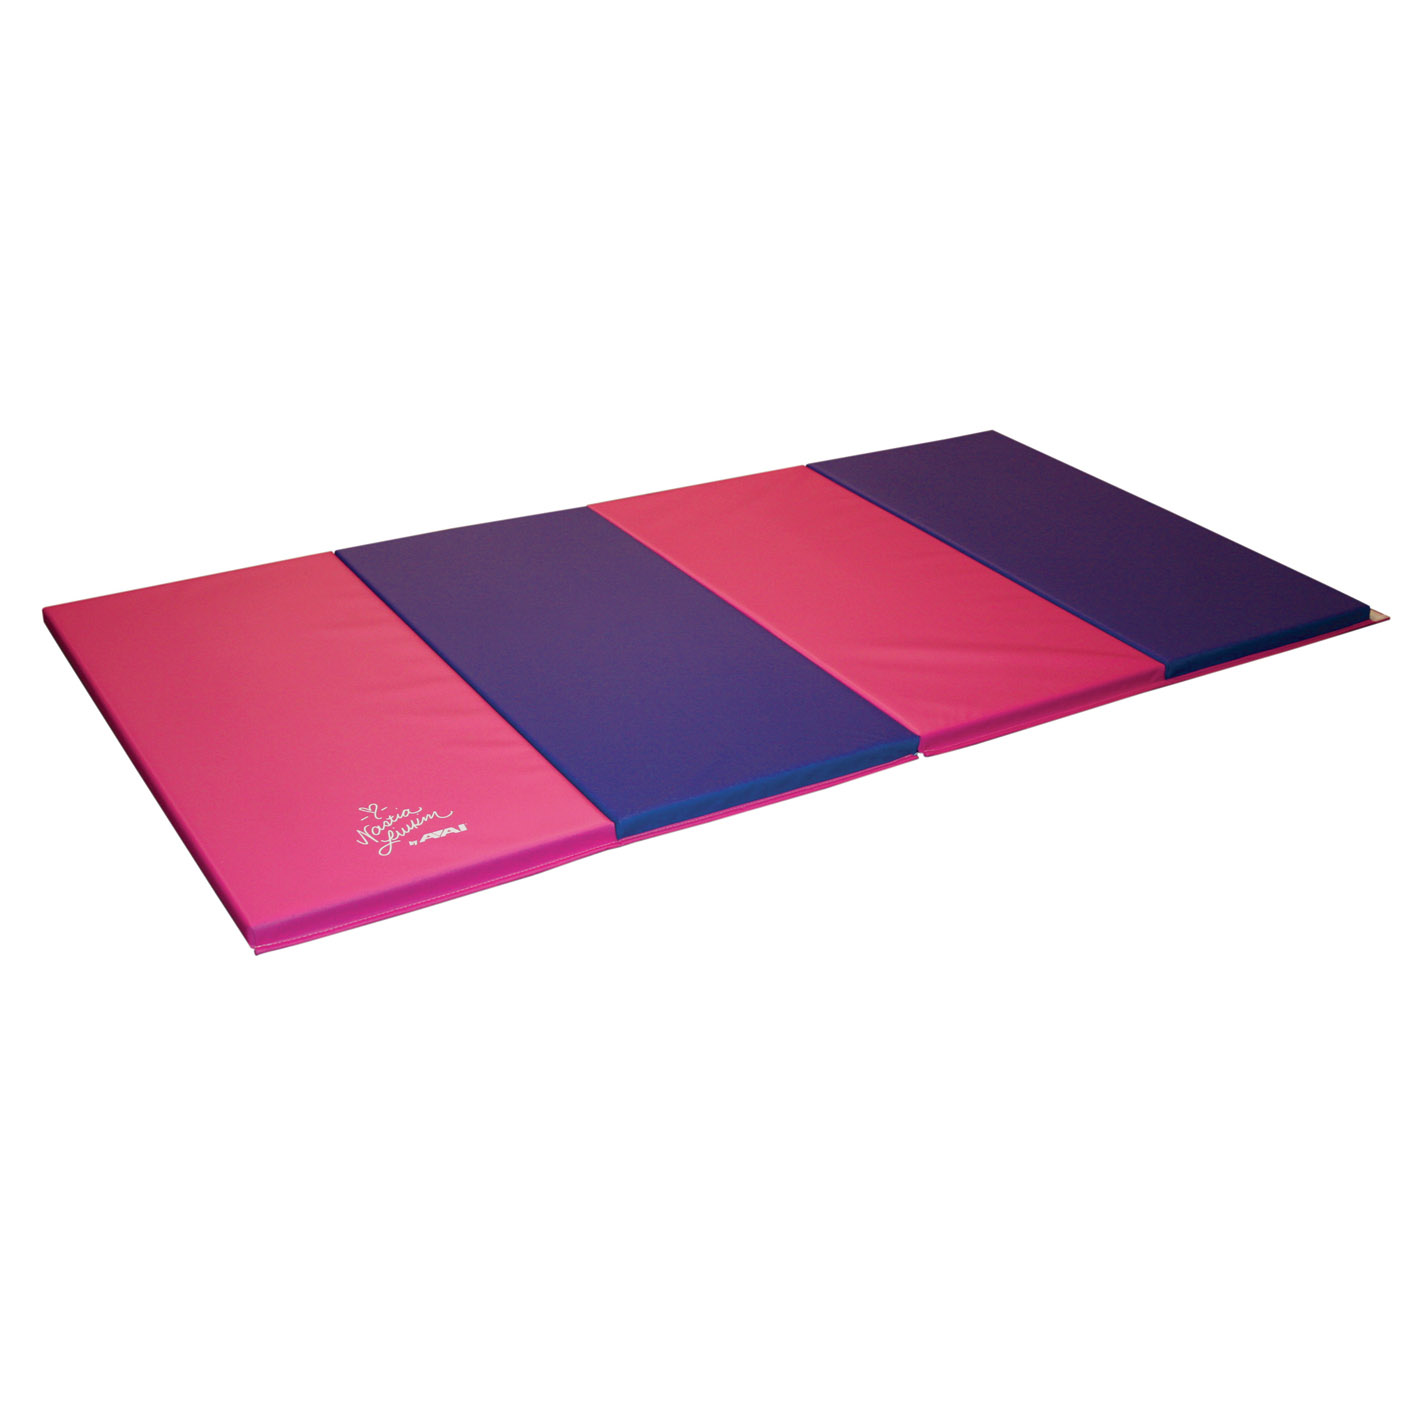 gym by home mat tumbling trak ie essentials gymgym package tumbl addie products beam